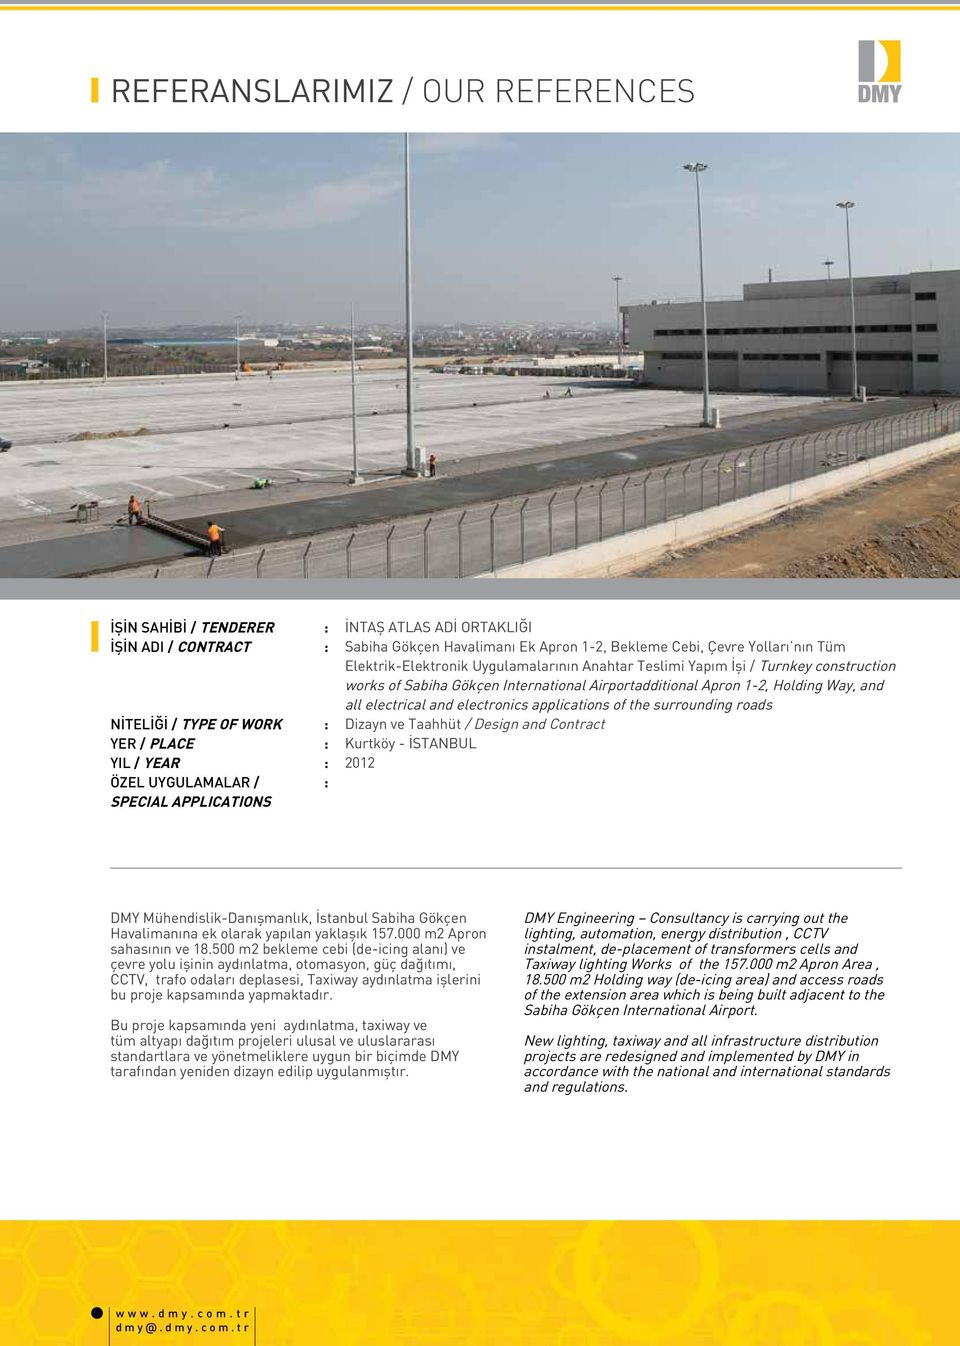 Airportadditional Apron 1-2, Holding Way, and all electrical and electronics applications of the surrounding roads Dizayn ve Taahhüt / Design and Contract Kurtköy - İSTANBUL 2012 DMY